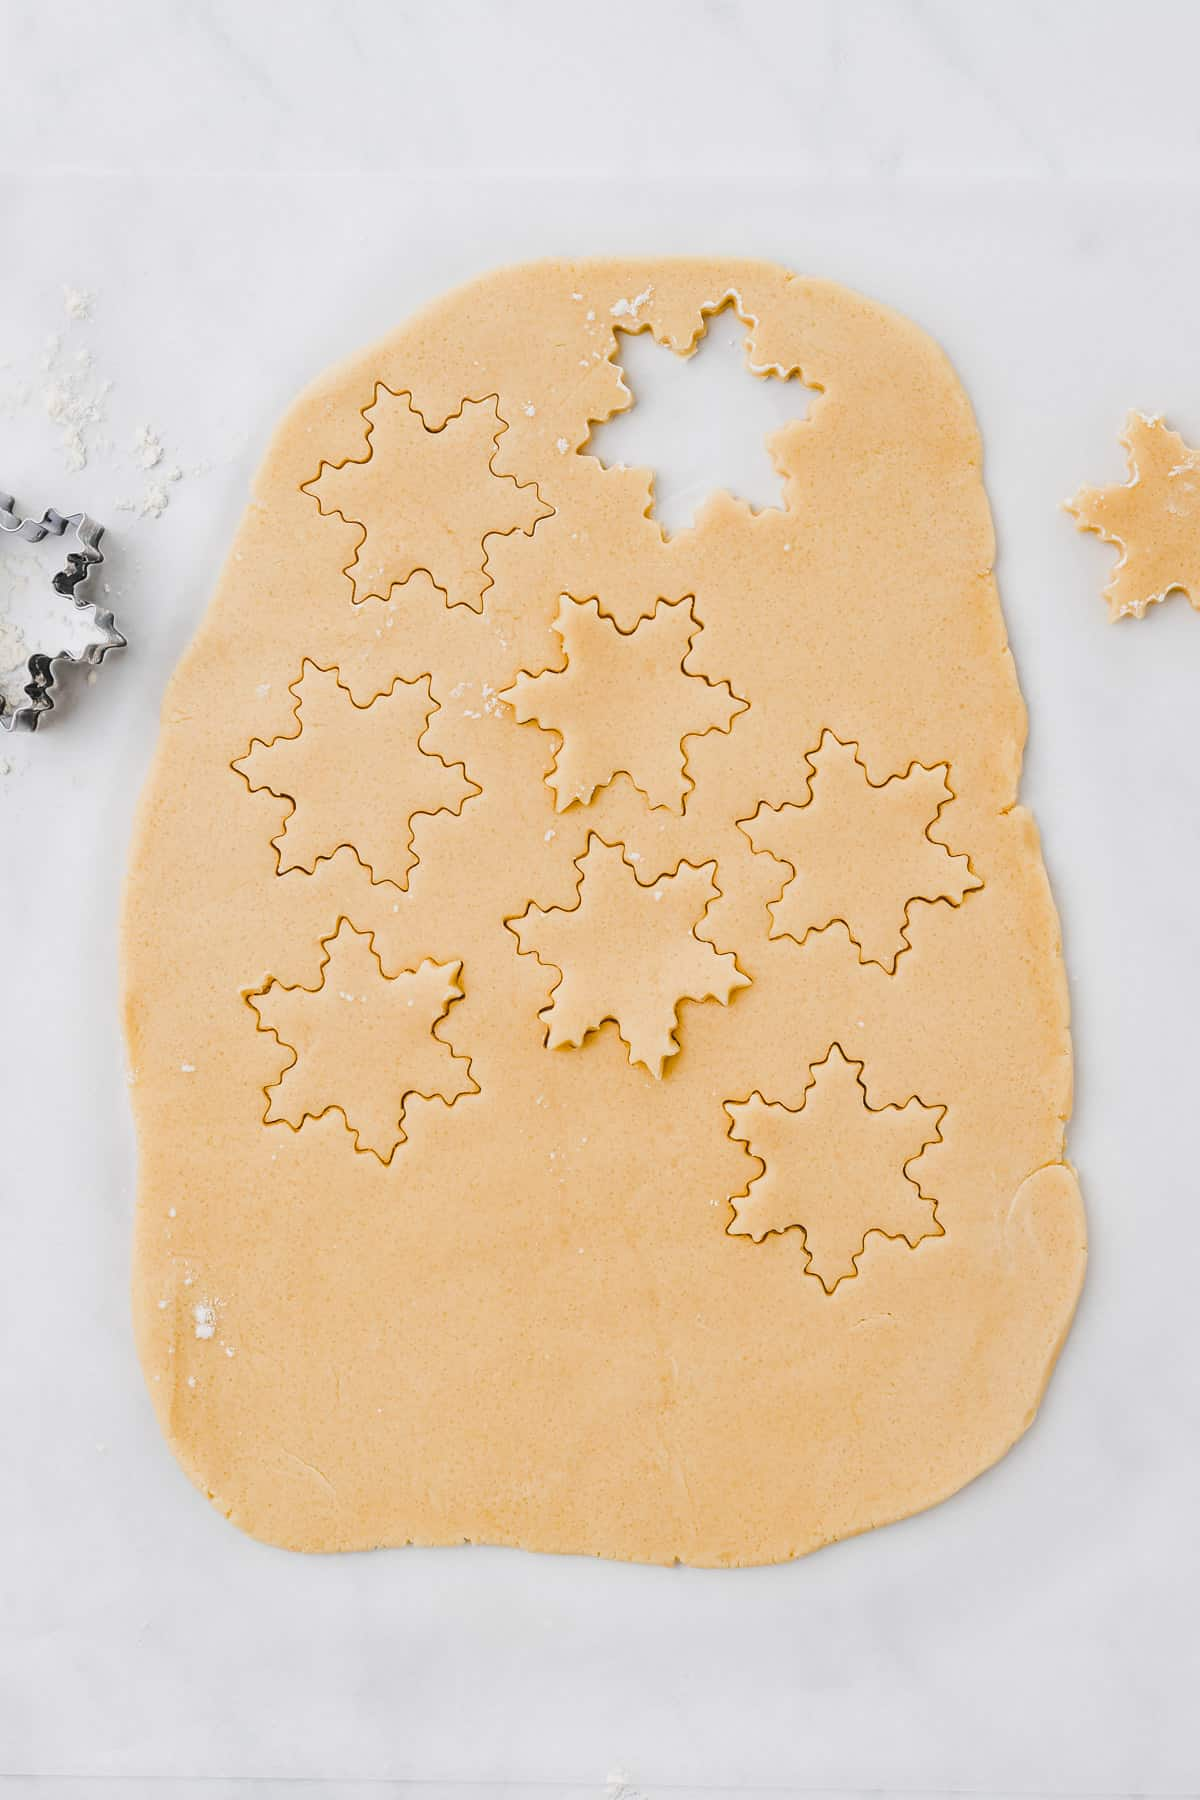 rolled out sugar cookies dough with a snowflake cookie cutter